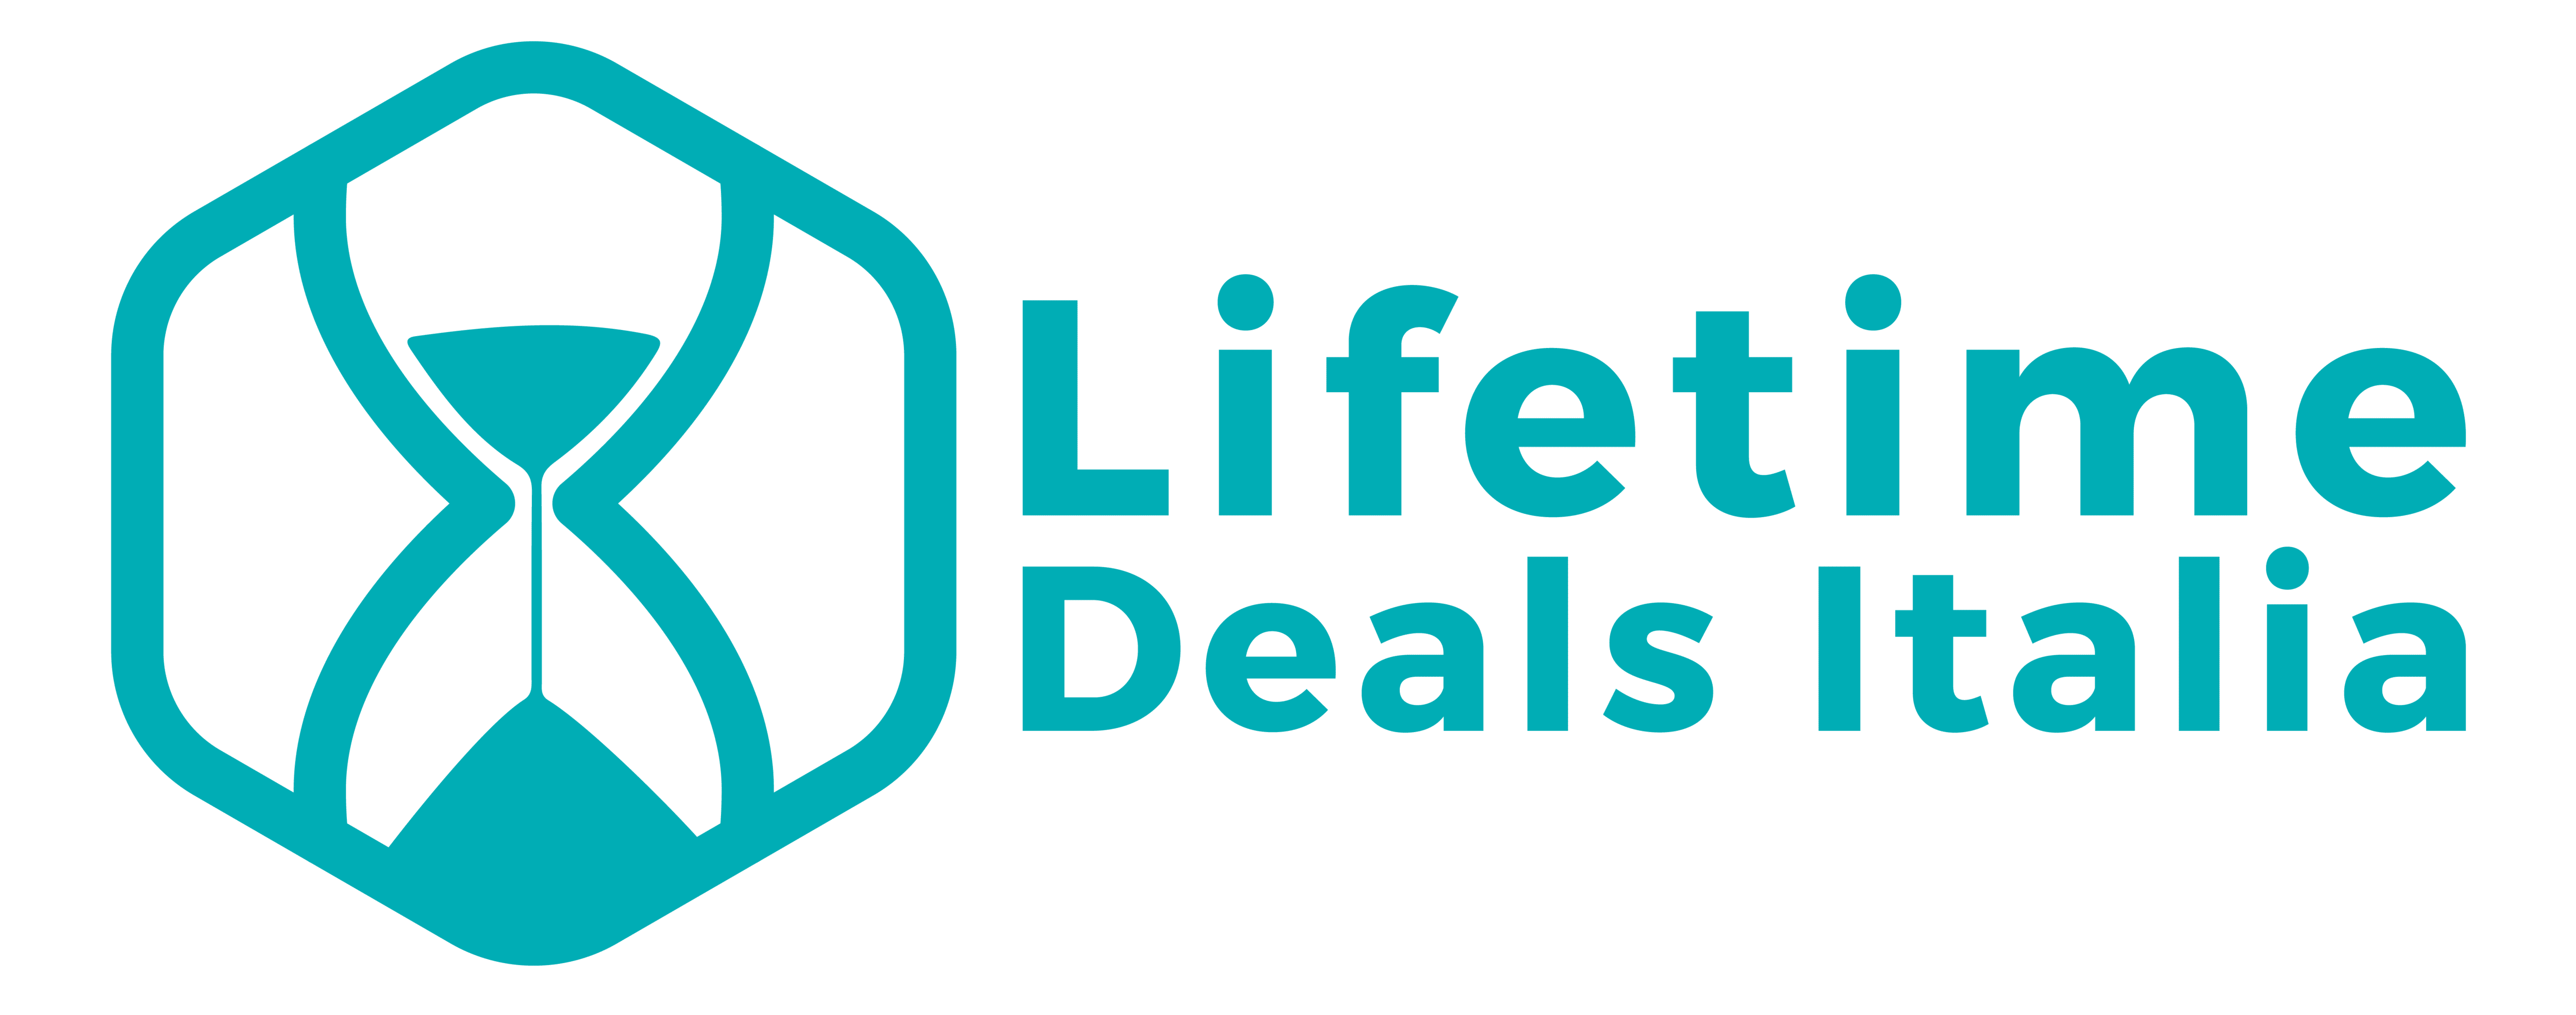 Lifetime Deals Italia - Logo e Testo - Header